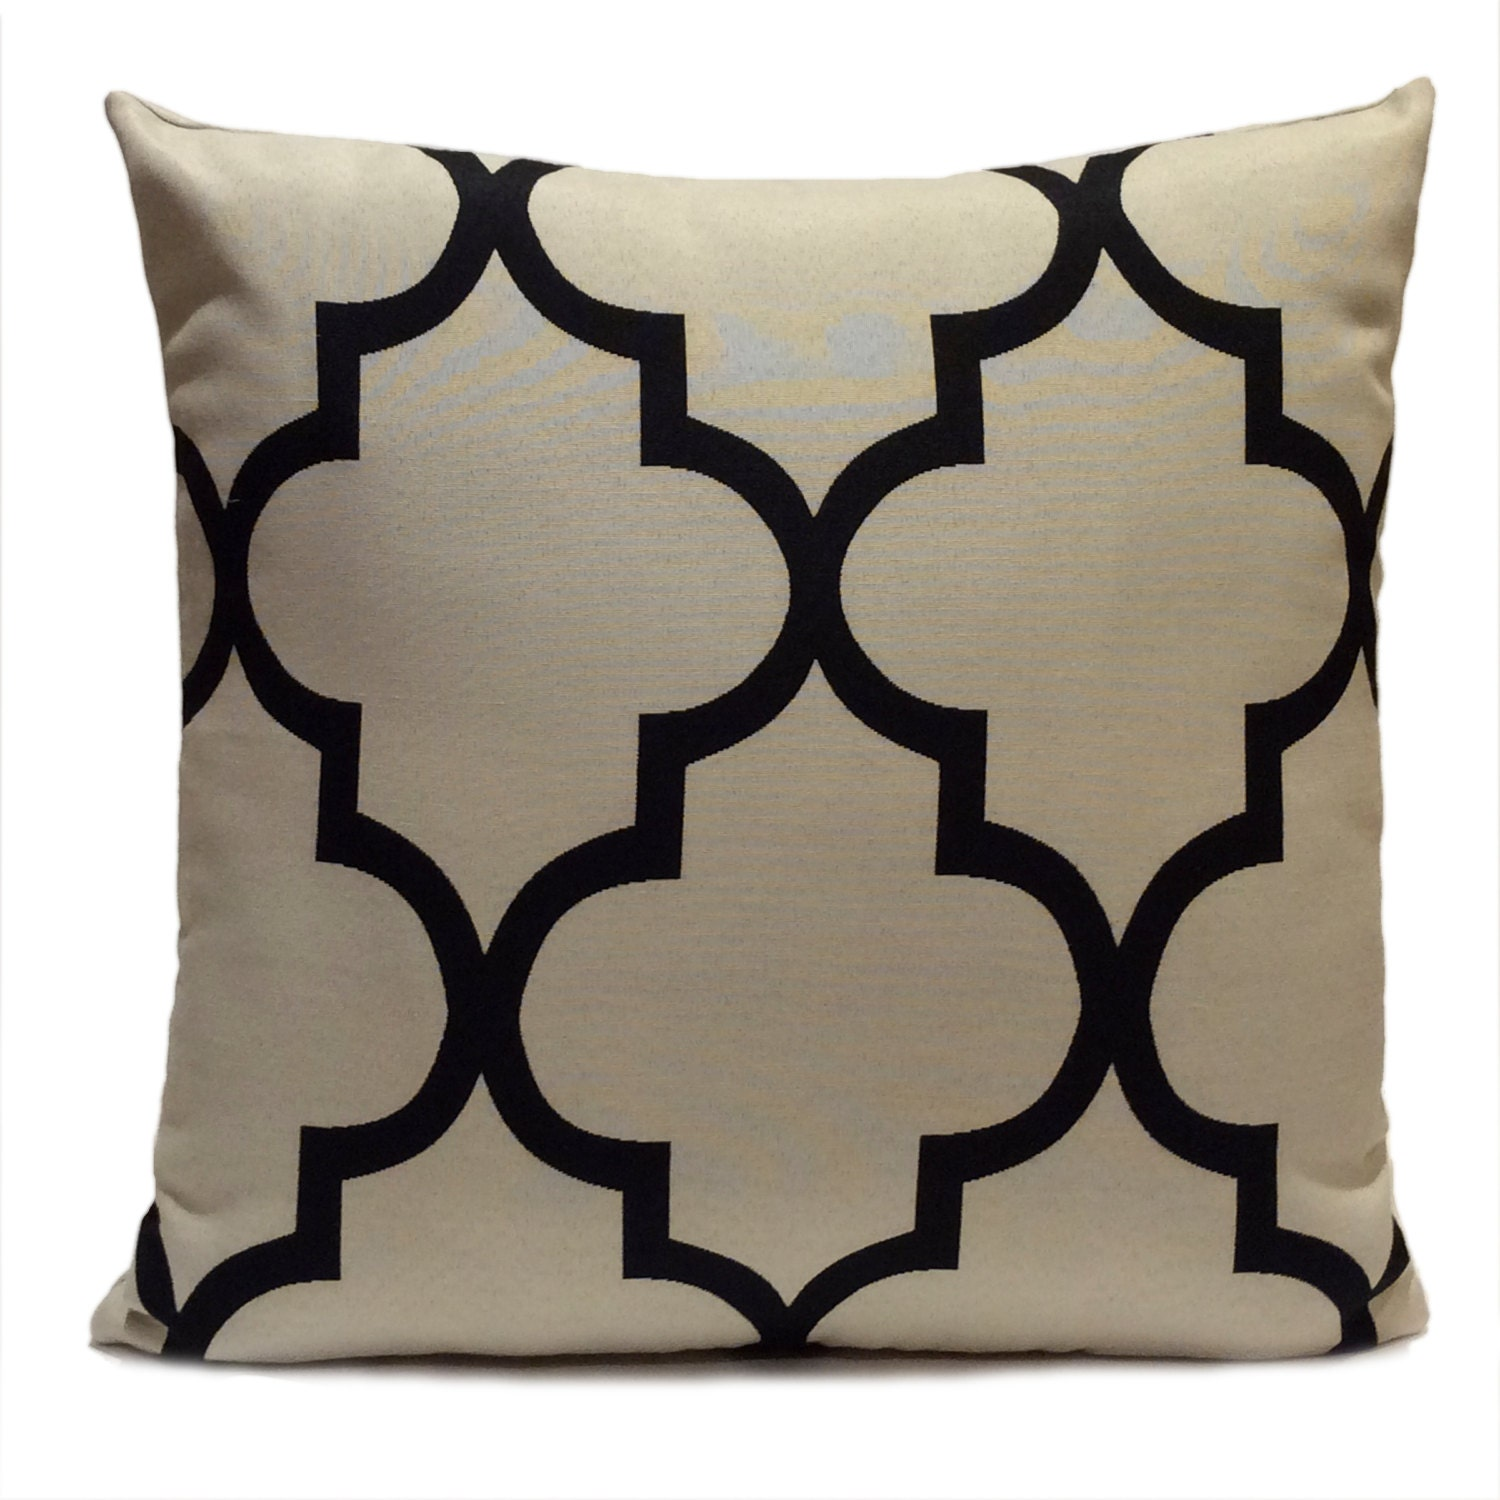 Black And Beige Decorative Pillows : Black and Grayish Beige Pillow Throw Pillow Cover Decorative